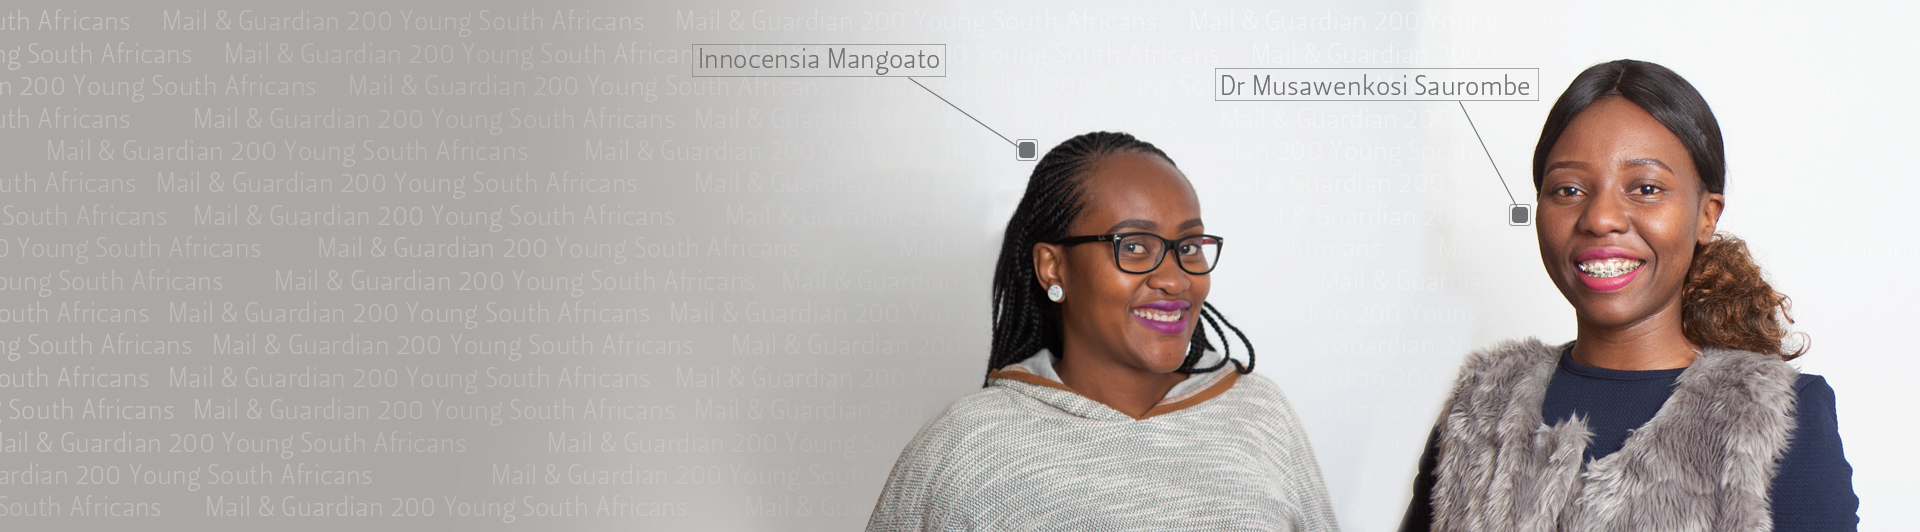 Dr Musawenkosi Saurombe and Innocensia Mangoato